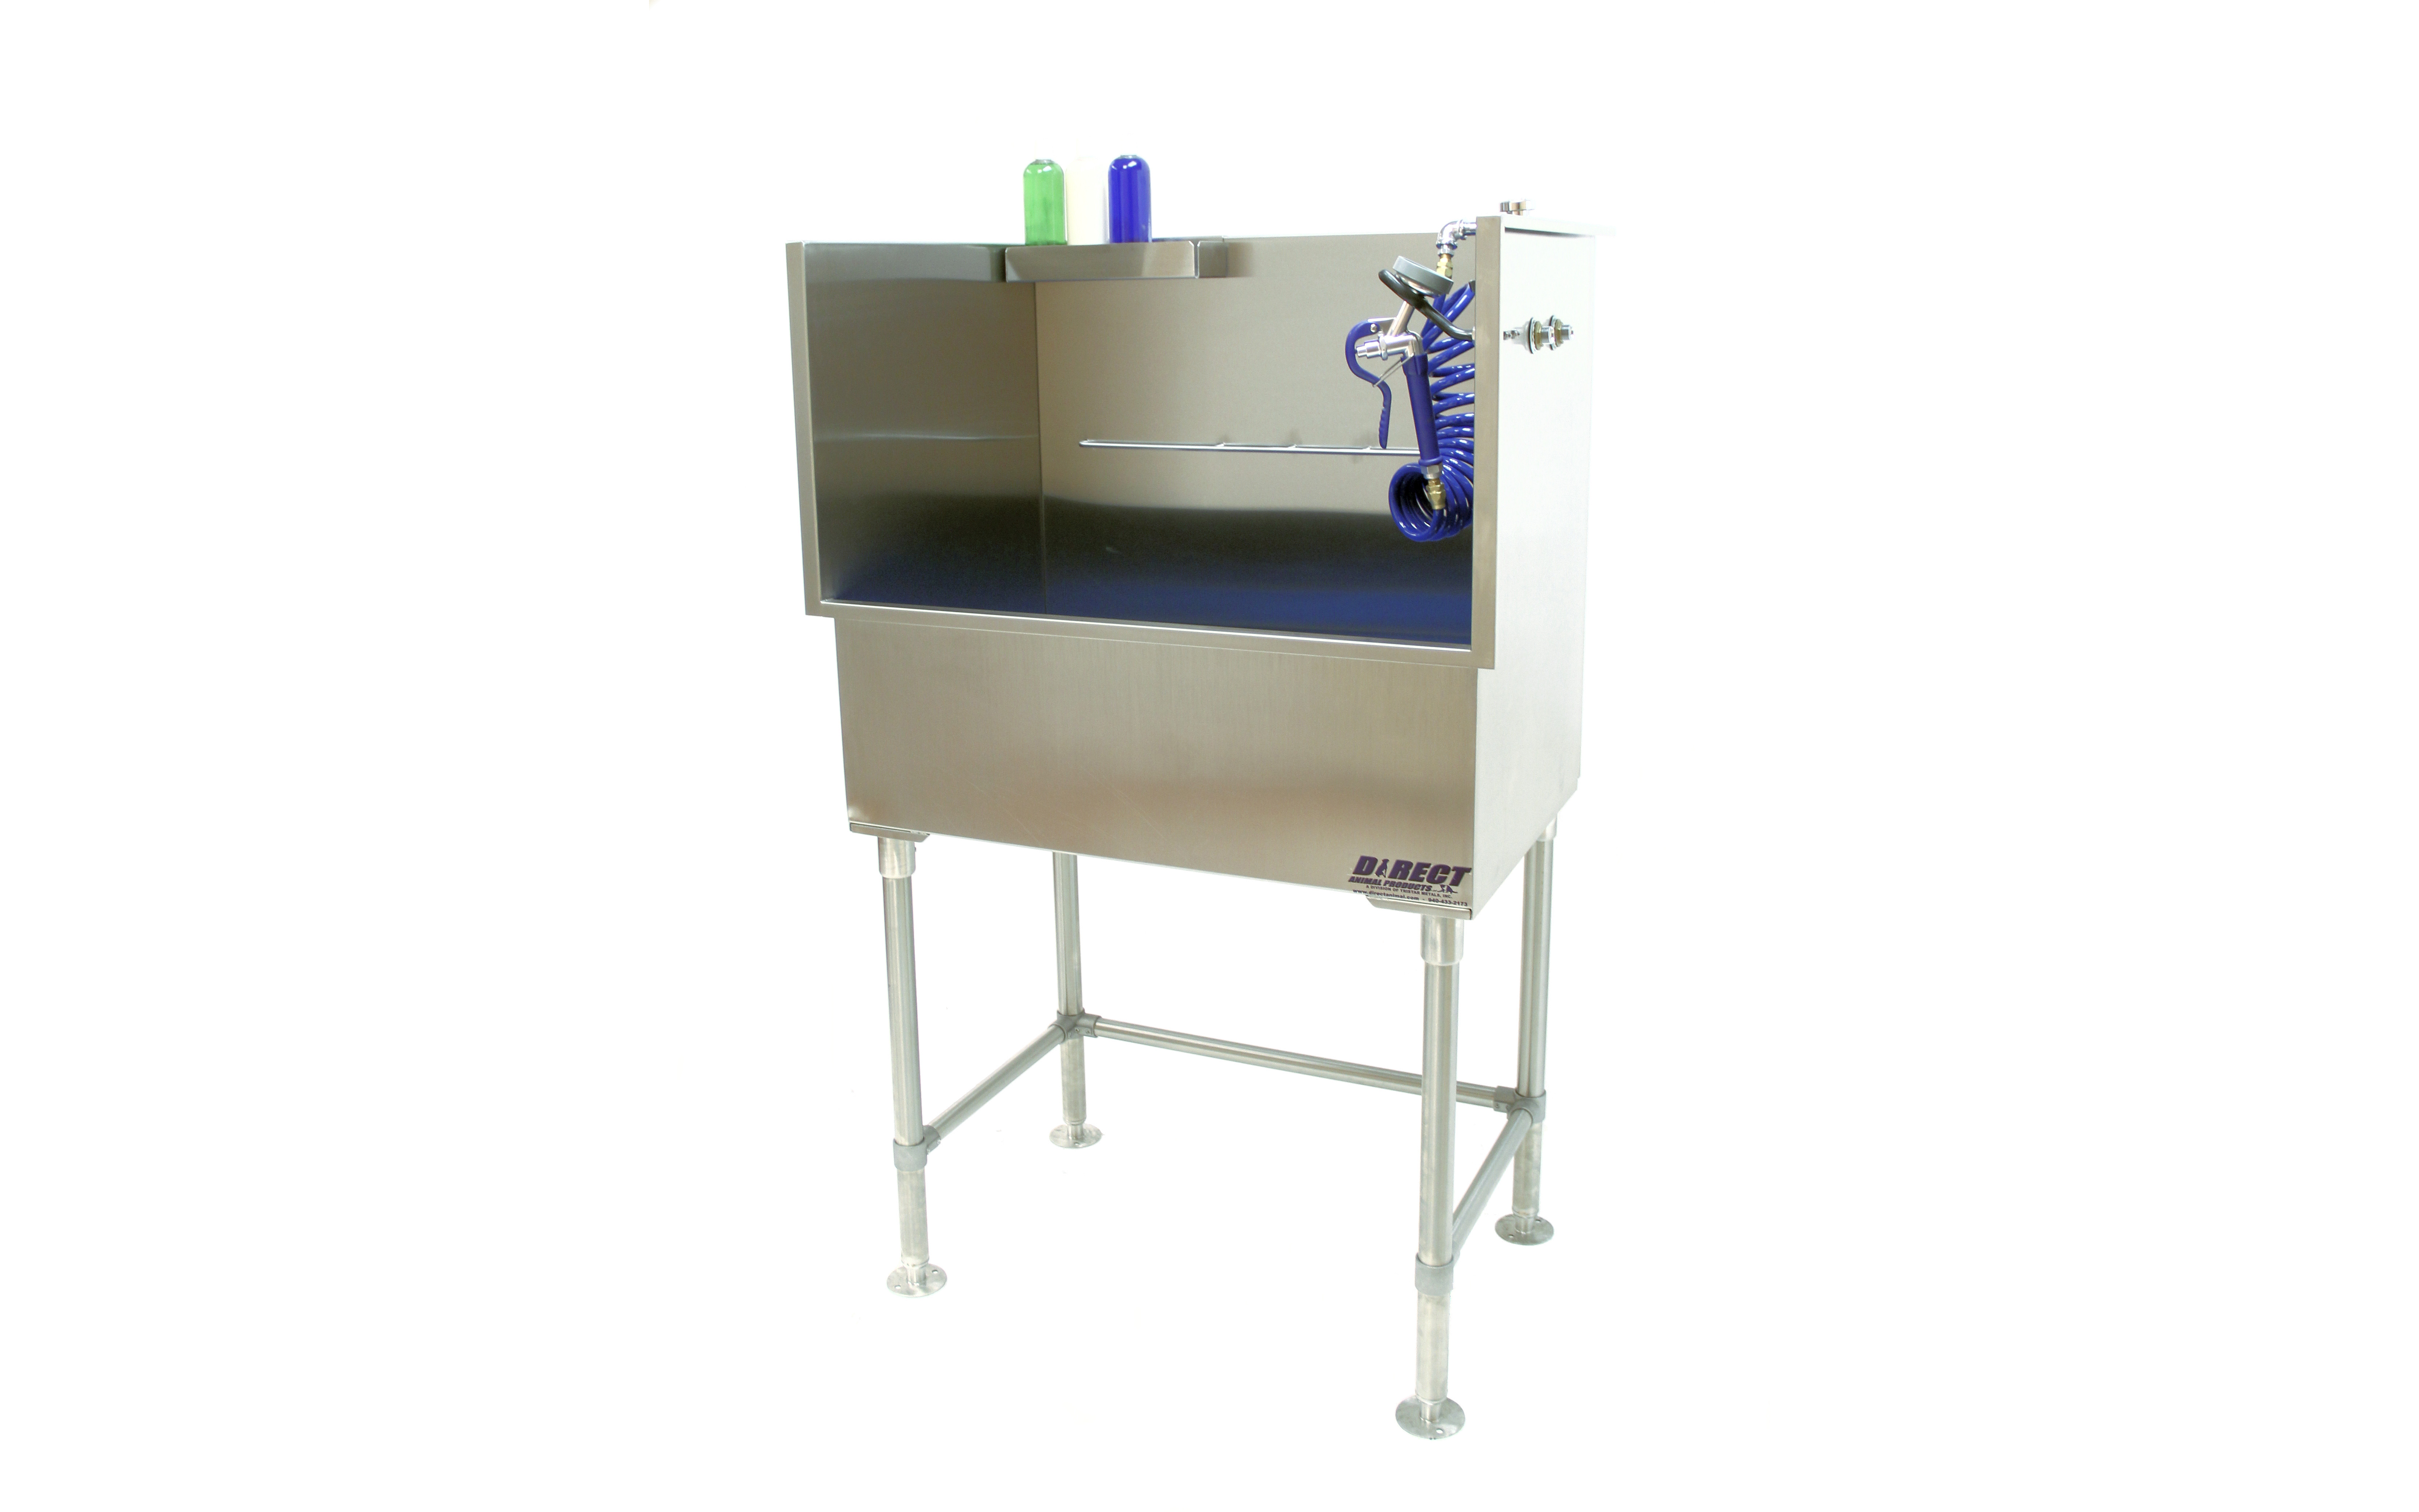 Stainless Steel Elevated Grooming Tub Direct Animal